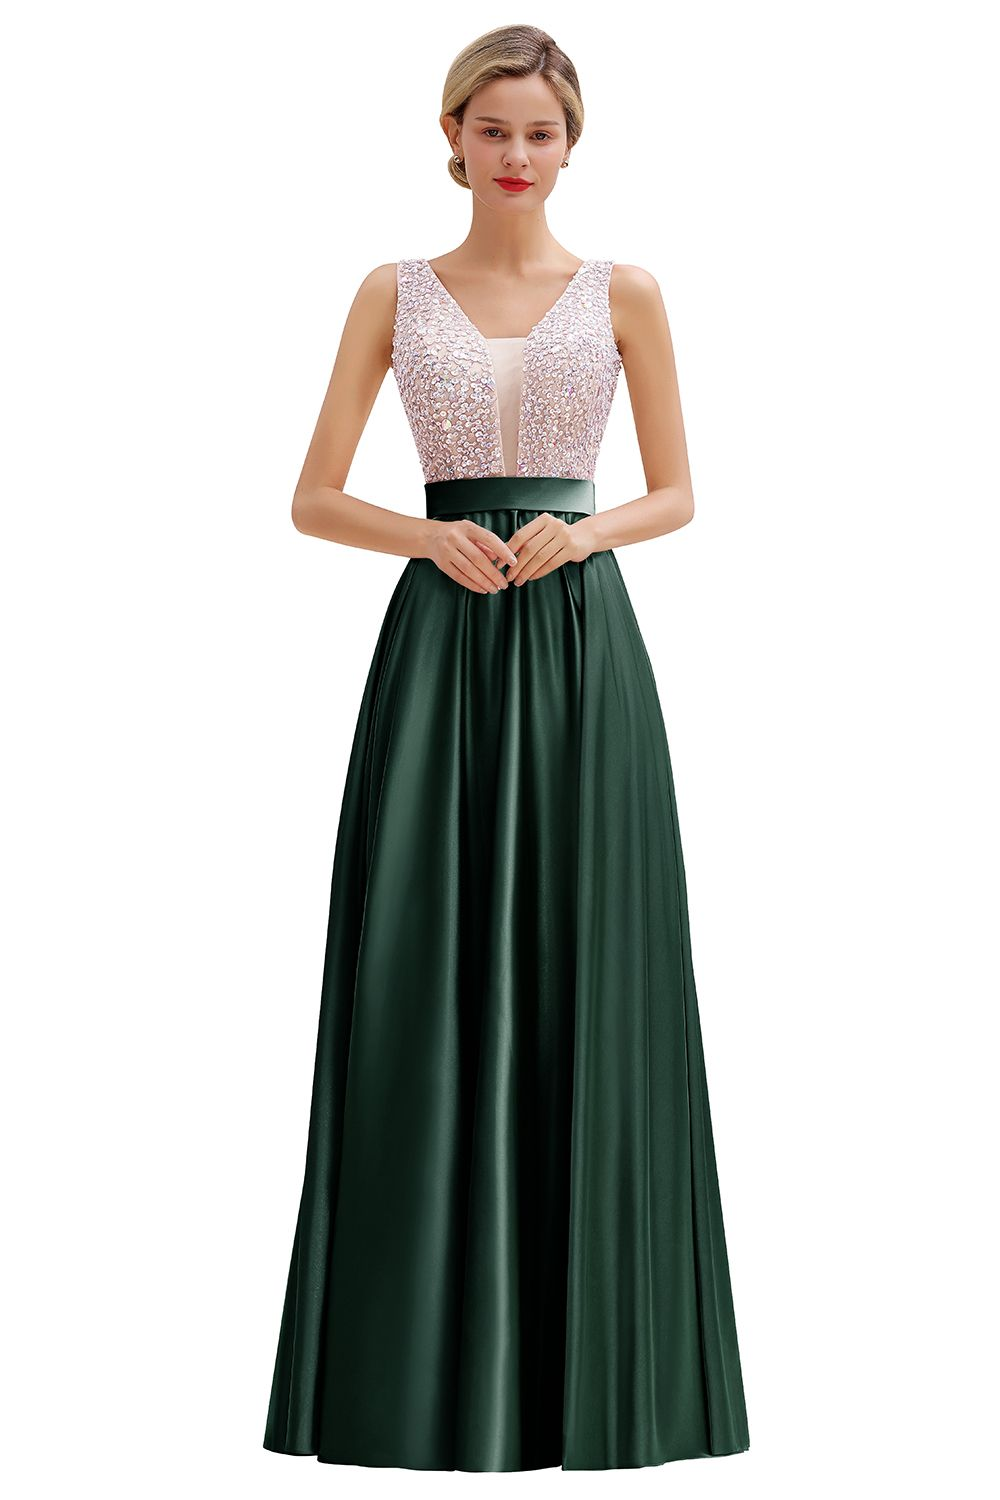 BMbridal Elegant Pink Sleeveless Long Prom Dress With Beadings Online